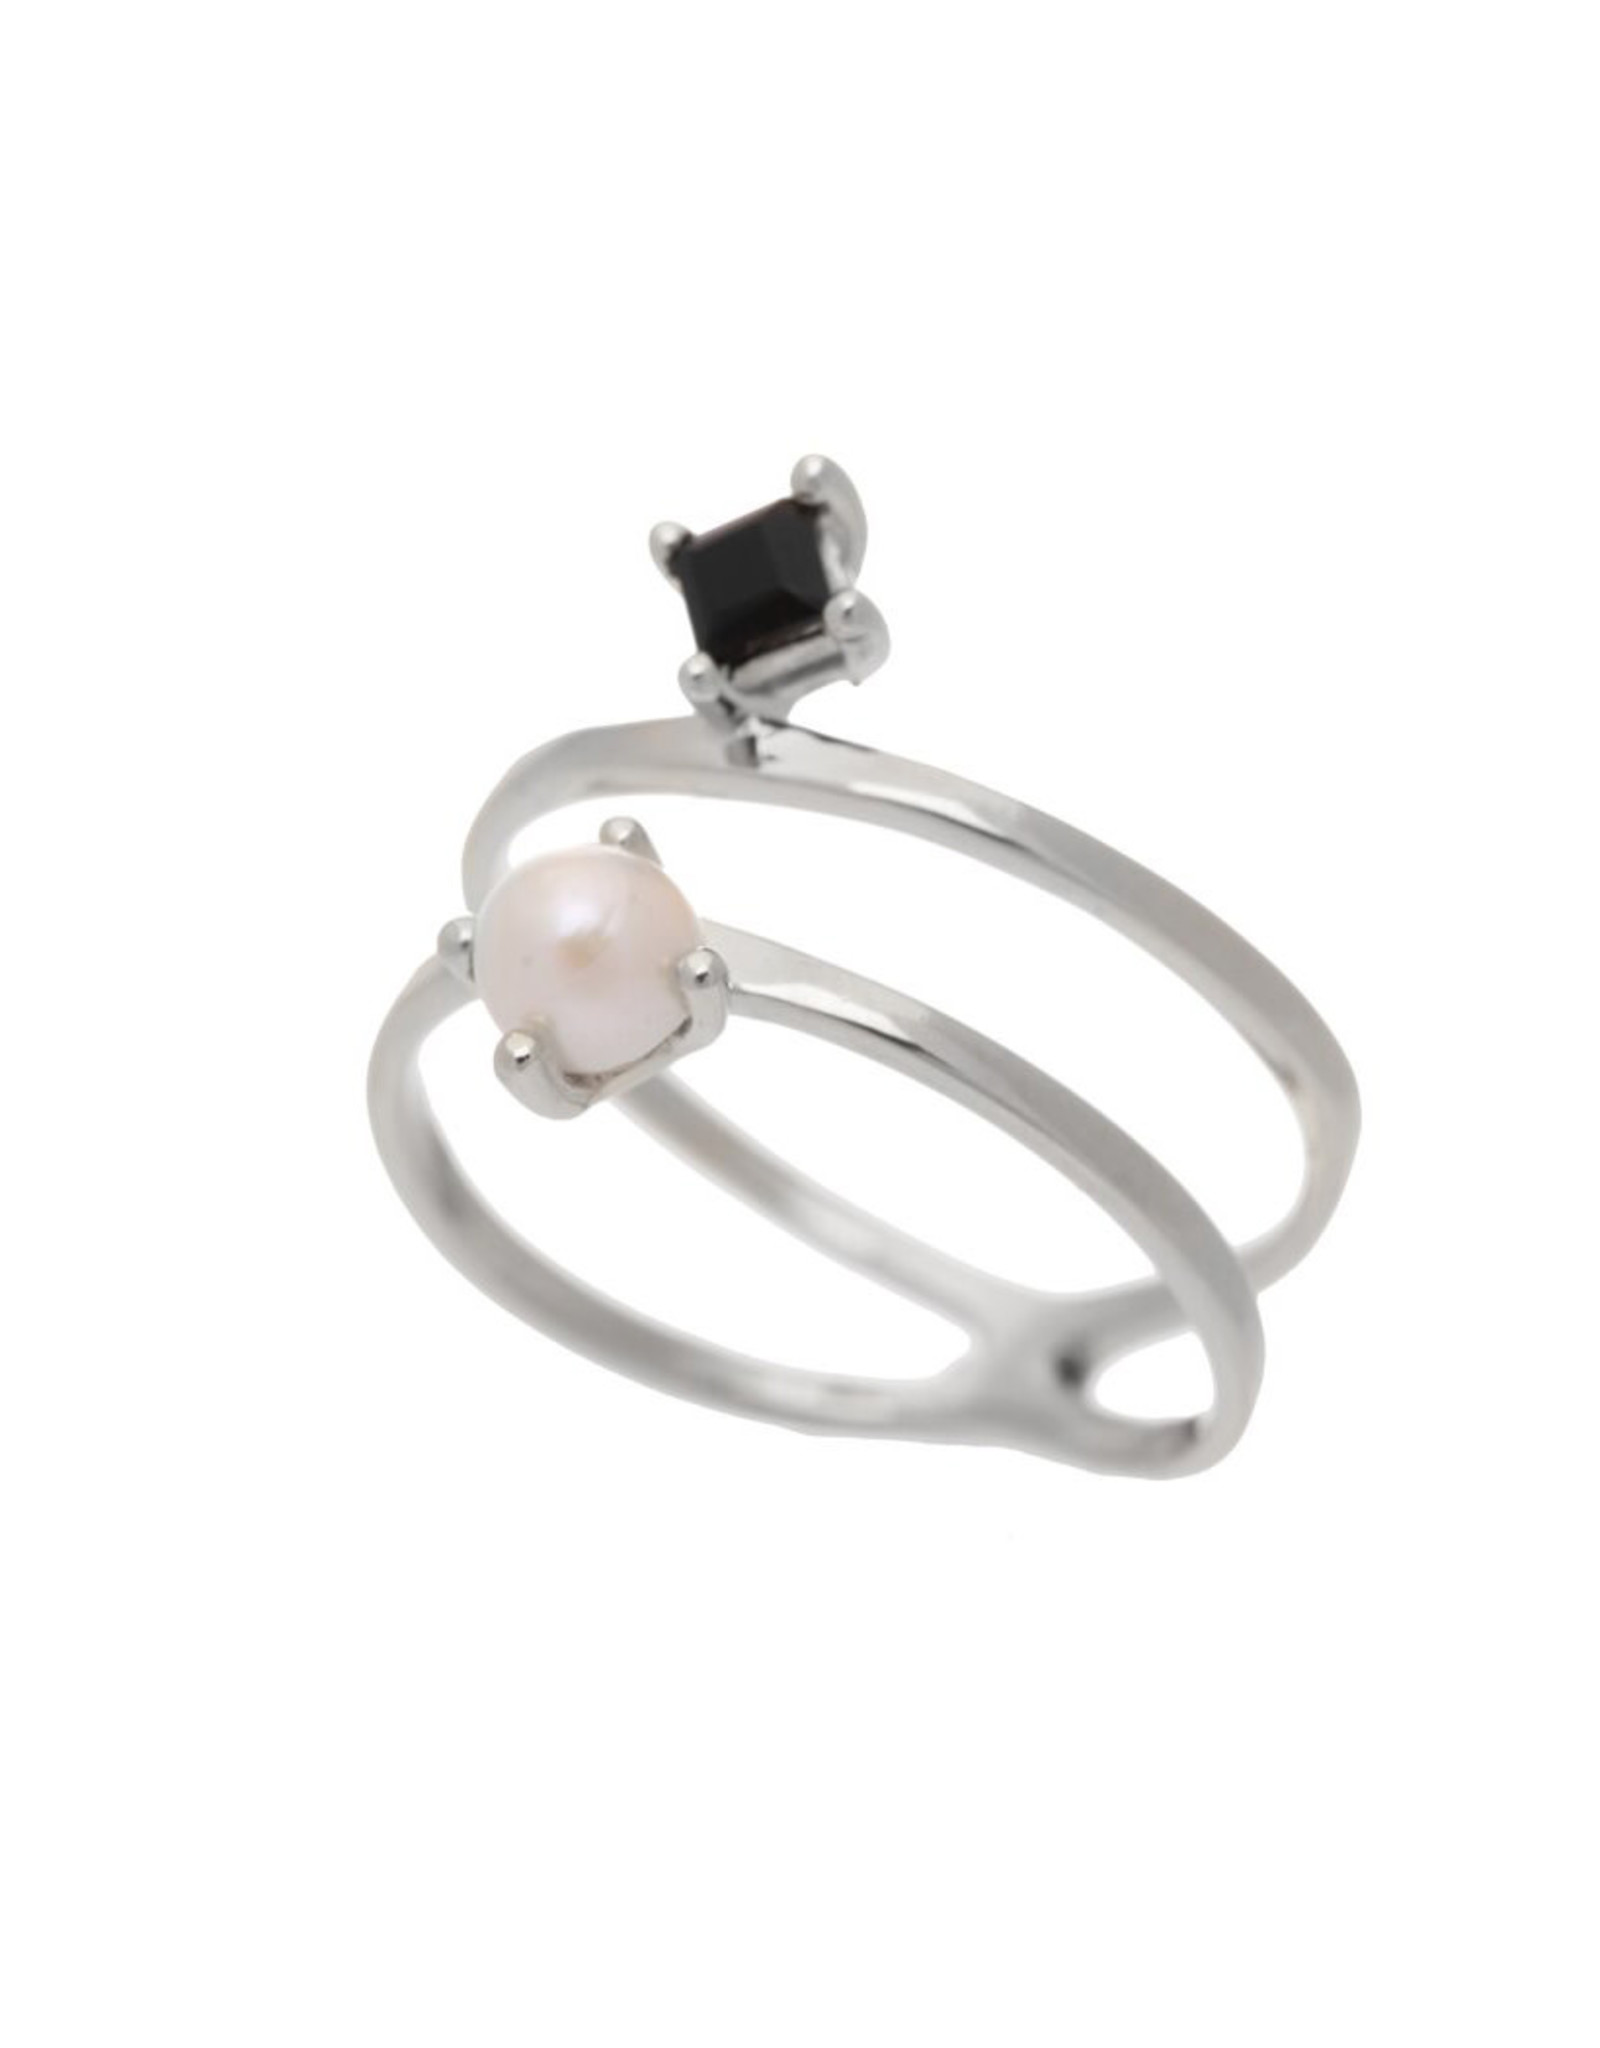 Sarah Mulder Jewelry Silver Cassie Ring - Onyx + Pearl - 6